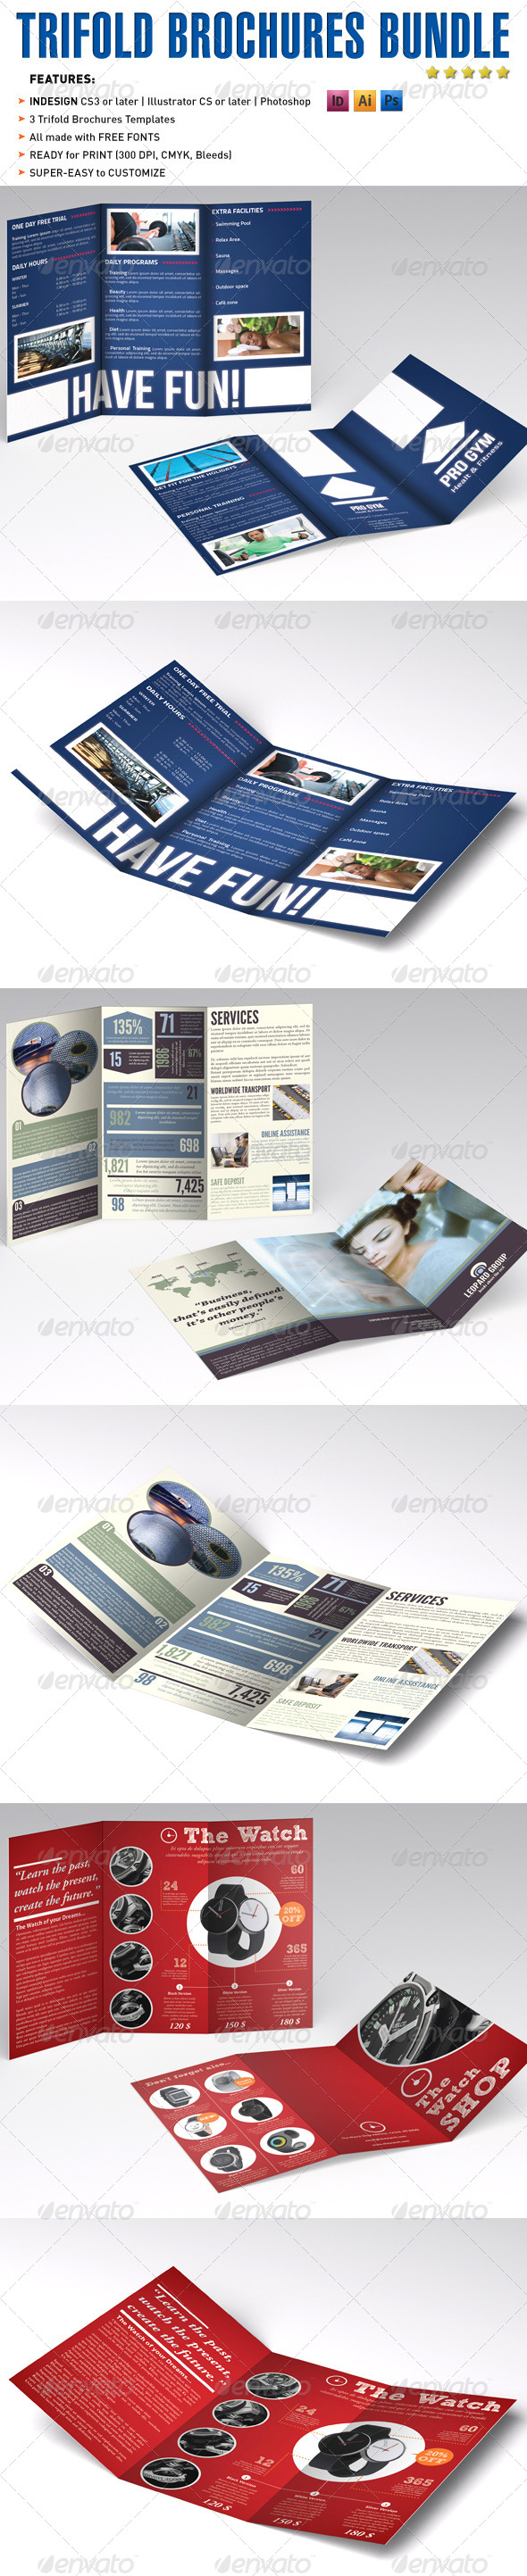 Trifold Brochures Bundle 2 - Catalogs Brochures